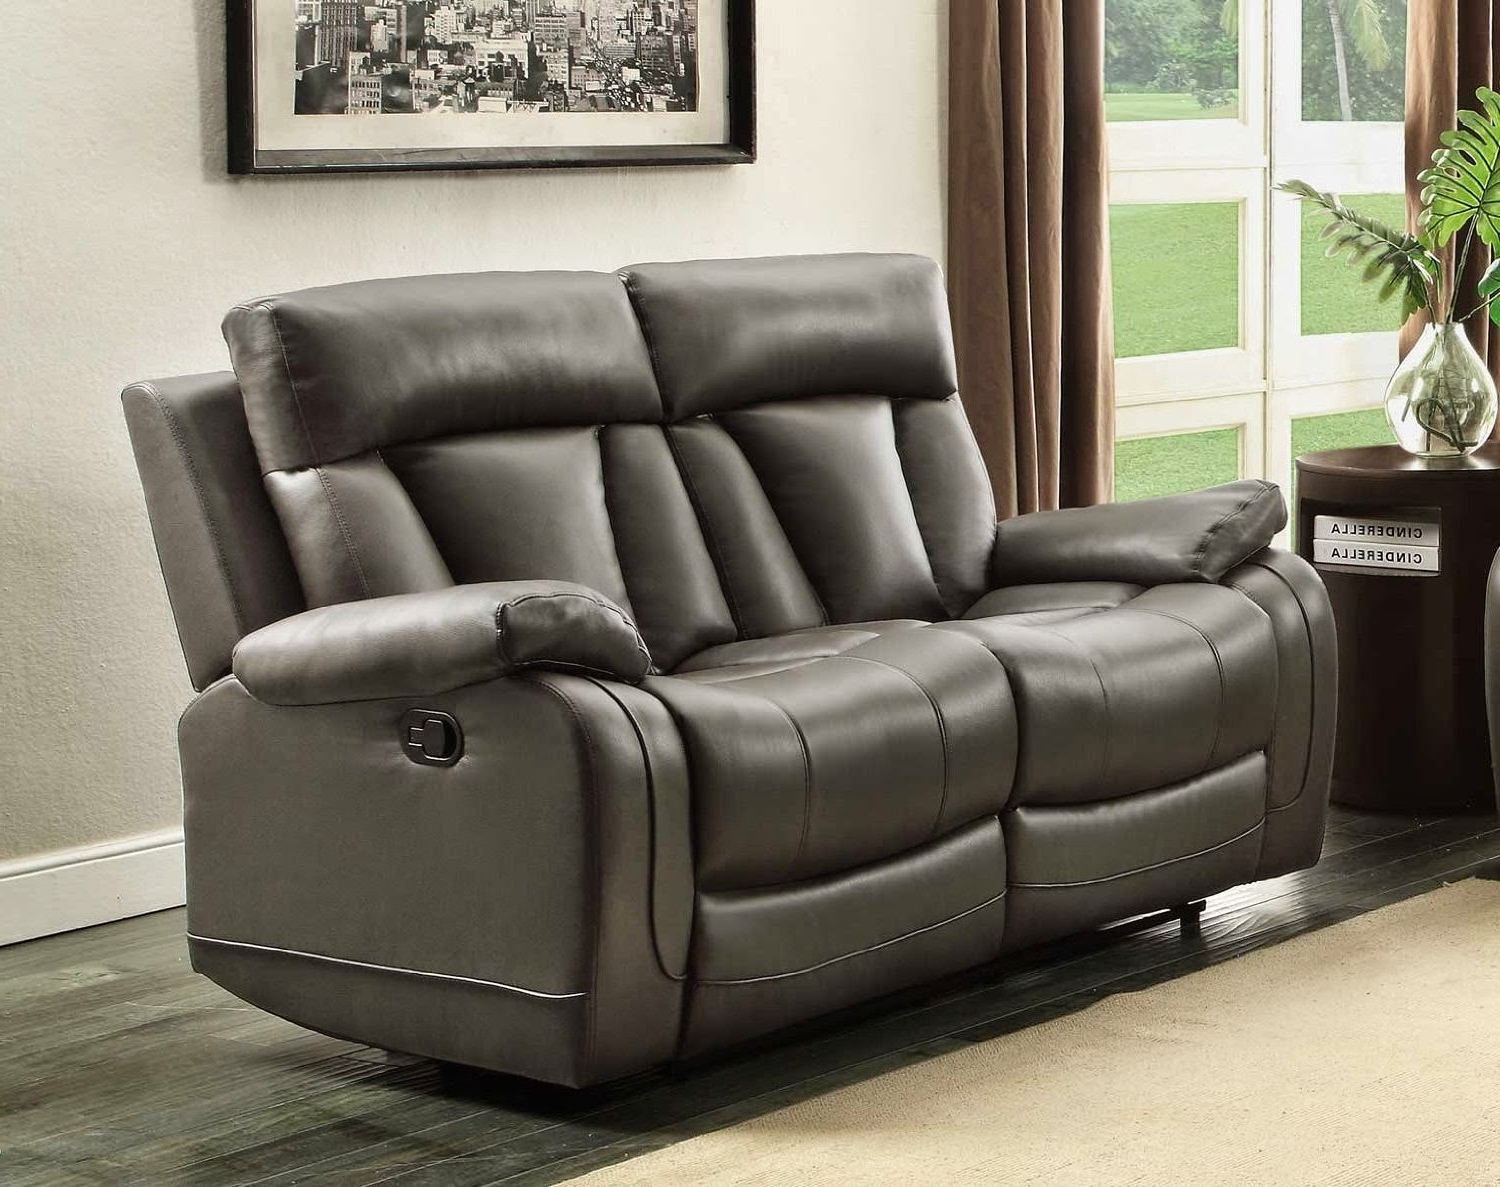 Newest 2 Seater Recliner Leather Sofas Inside Best Reclining Sofa For The Money: Vivaldi 2 Seater Reclining (View 9 of 20)